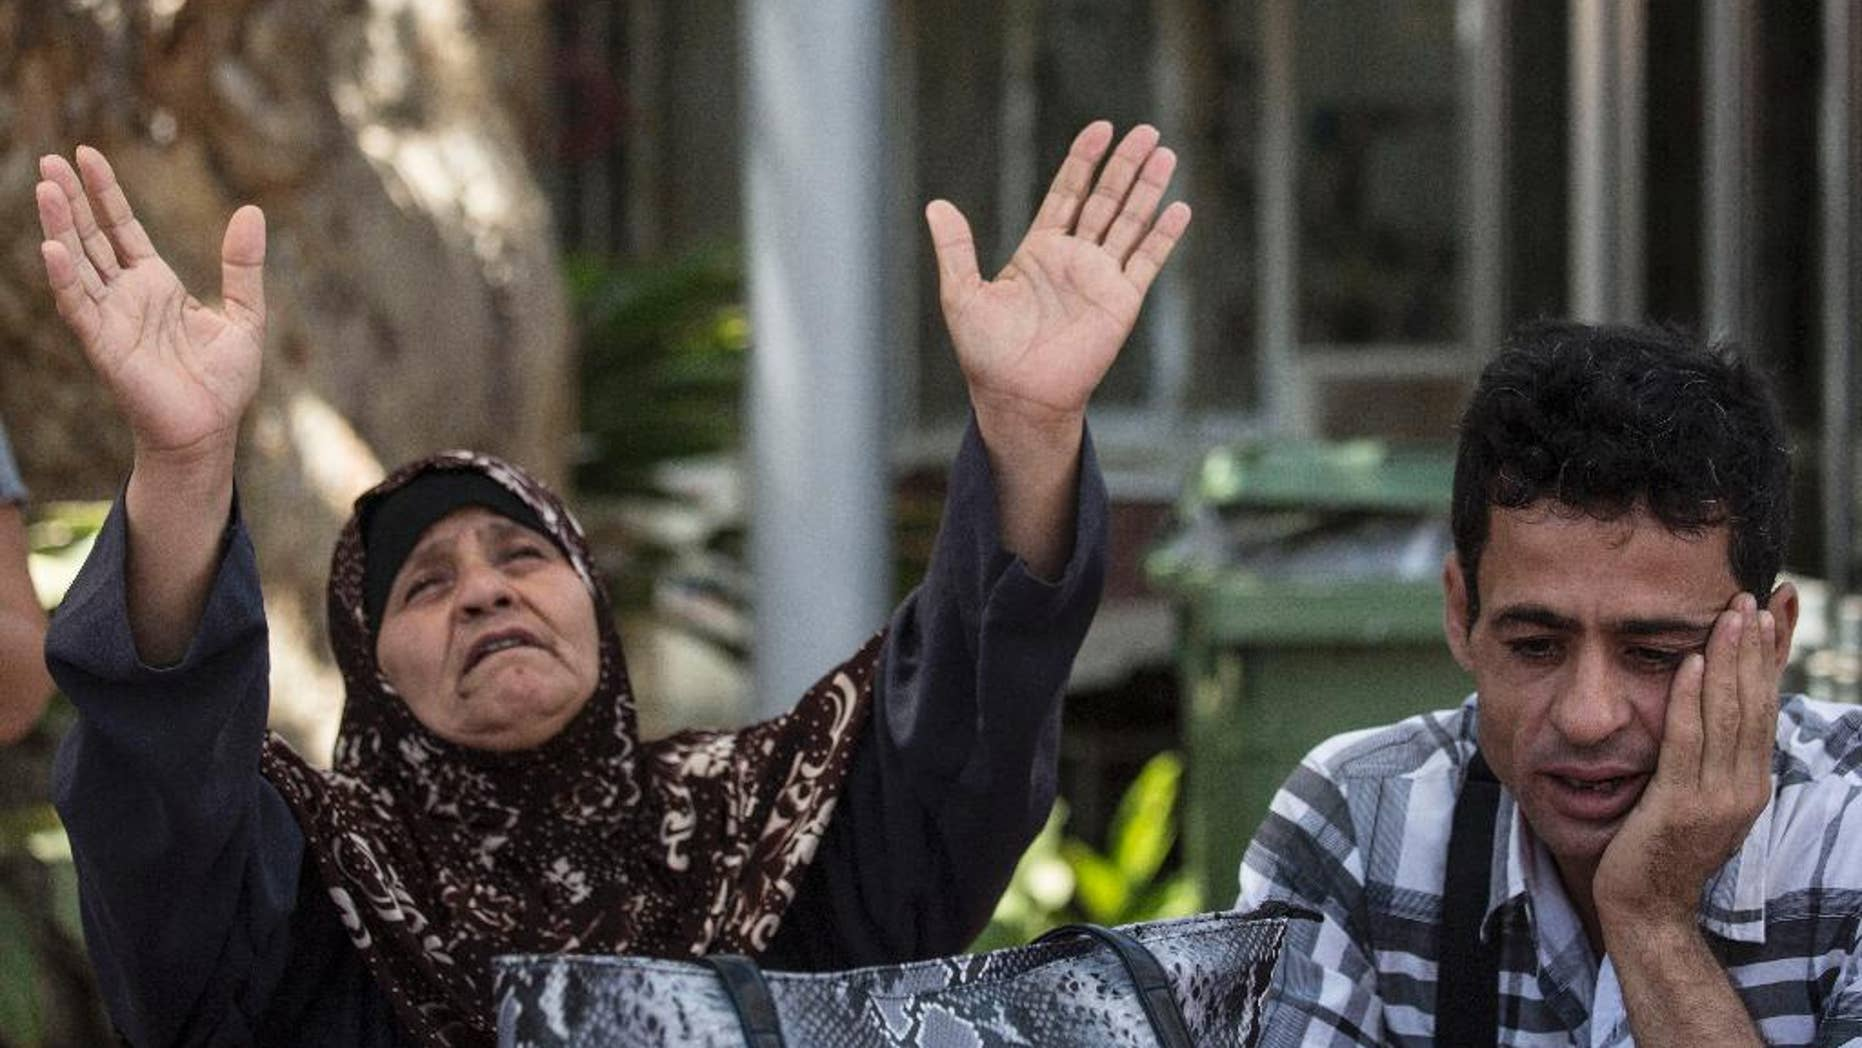 Mazoza Allan , left, and Amid Allan, a brother of Mohammed Allan, a Palestinian prisoner on a hunger strike, wait outside Barzilai hospital in Ashkelon, southern, Israel, Wednesday, August 19, 2015. Israel's Supreme Court is hearing a petition to immediately release Allan who has been on a hunger strike for 65 days. Allan's lawyer says the state has proposed a compromise under which Allan would be released in November, if he agrees to end his hunger strike. (AP Photo/Tsafrir Abayov)